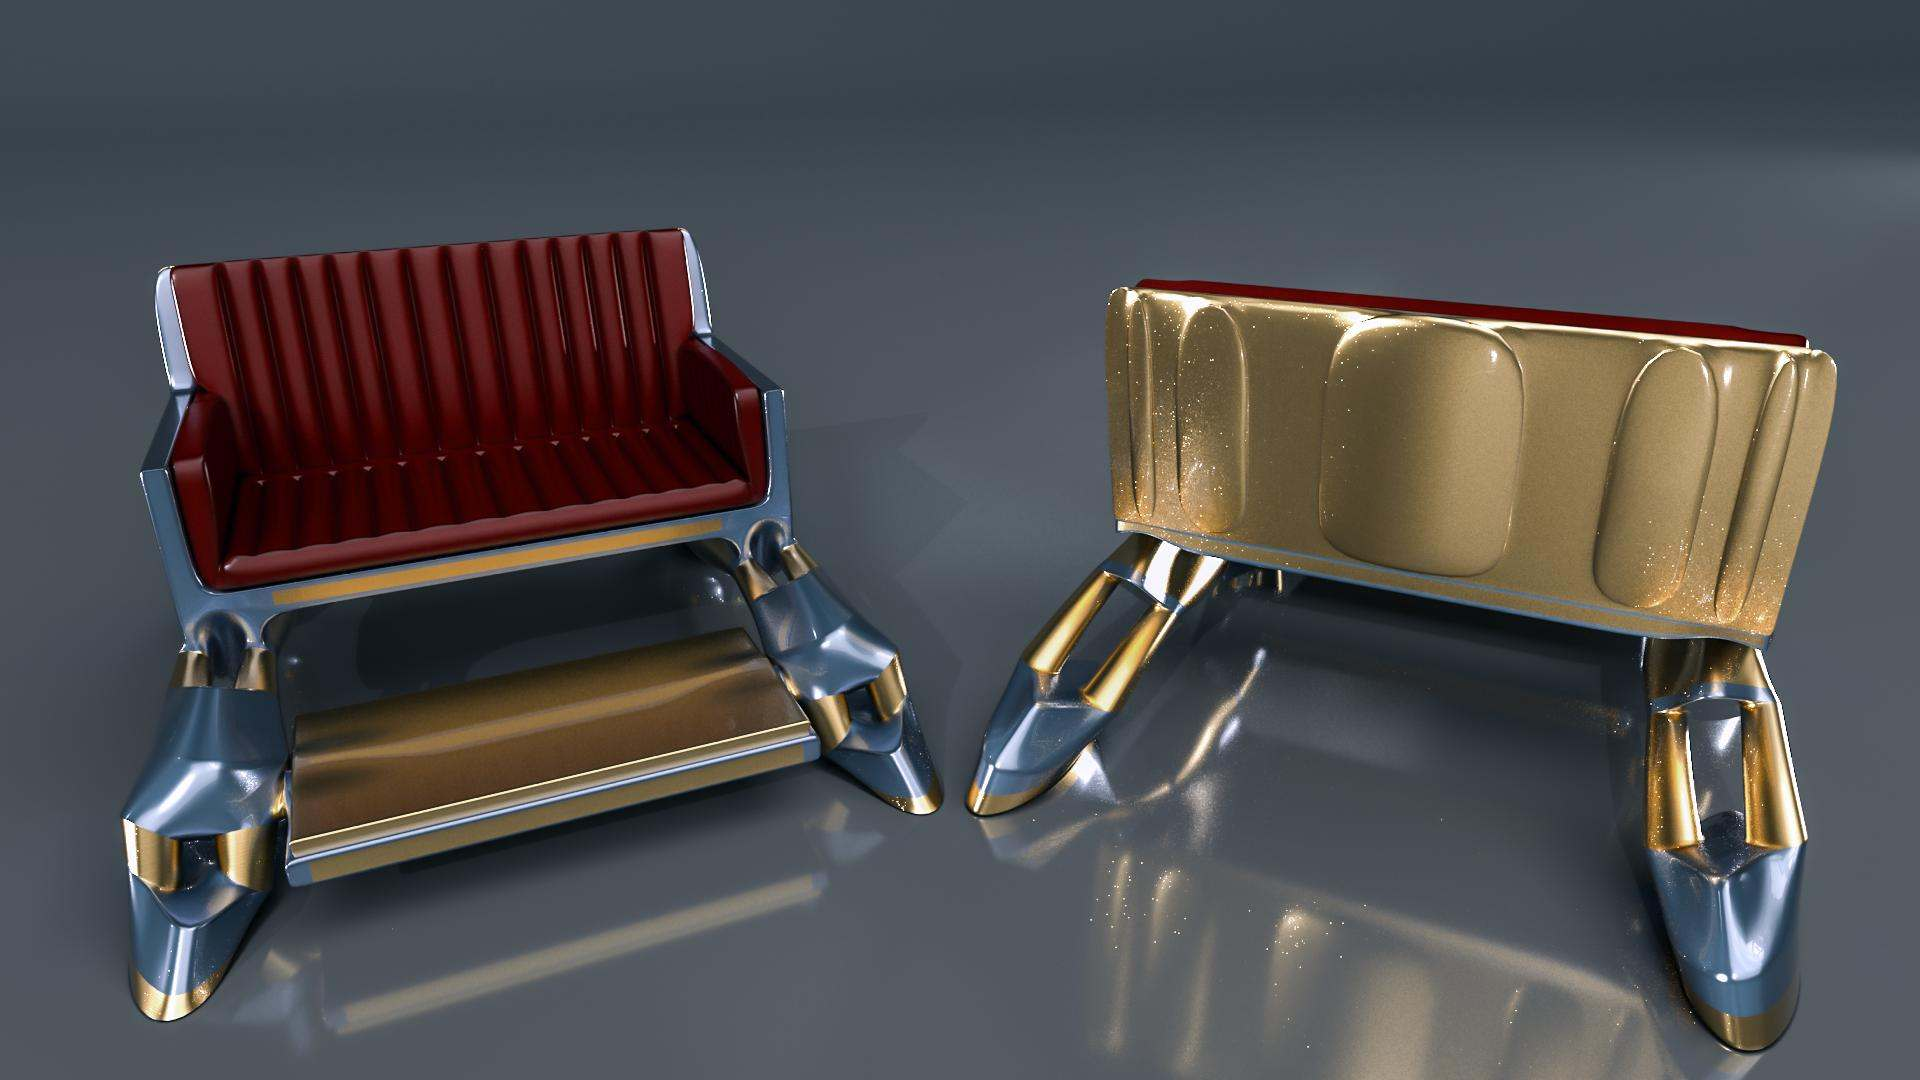 industrialdesign16 Industrial Design Modeled and Rendered in Modo by Mike Grauer